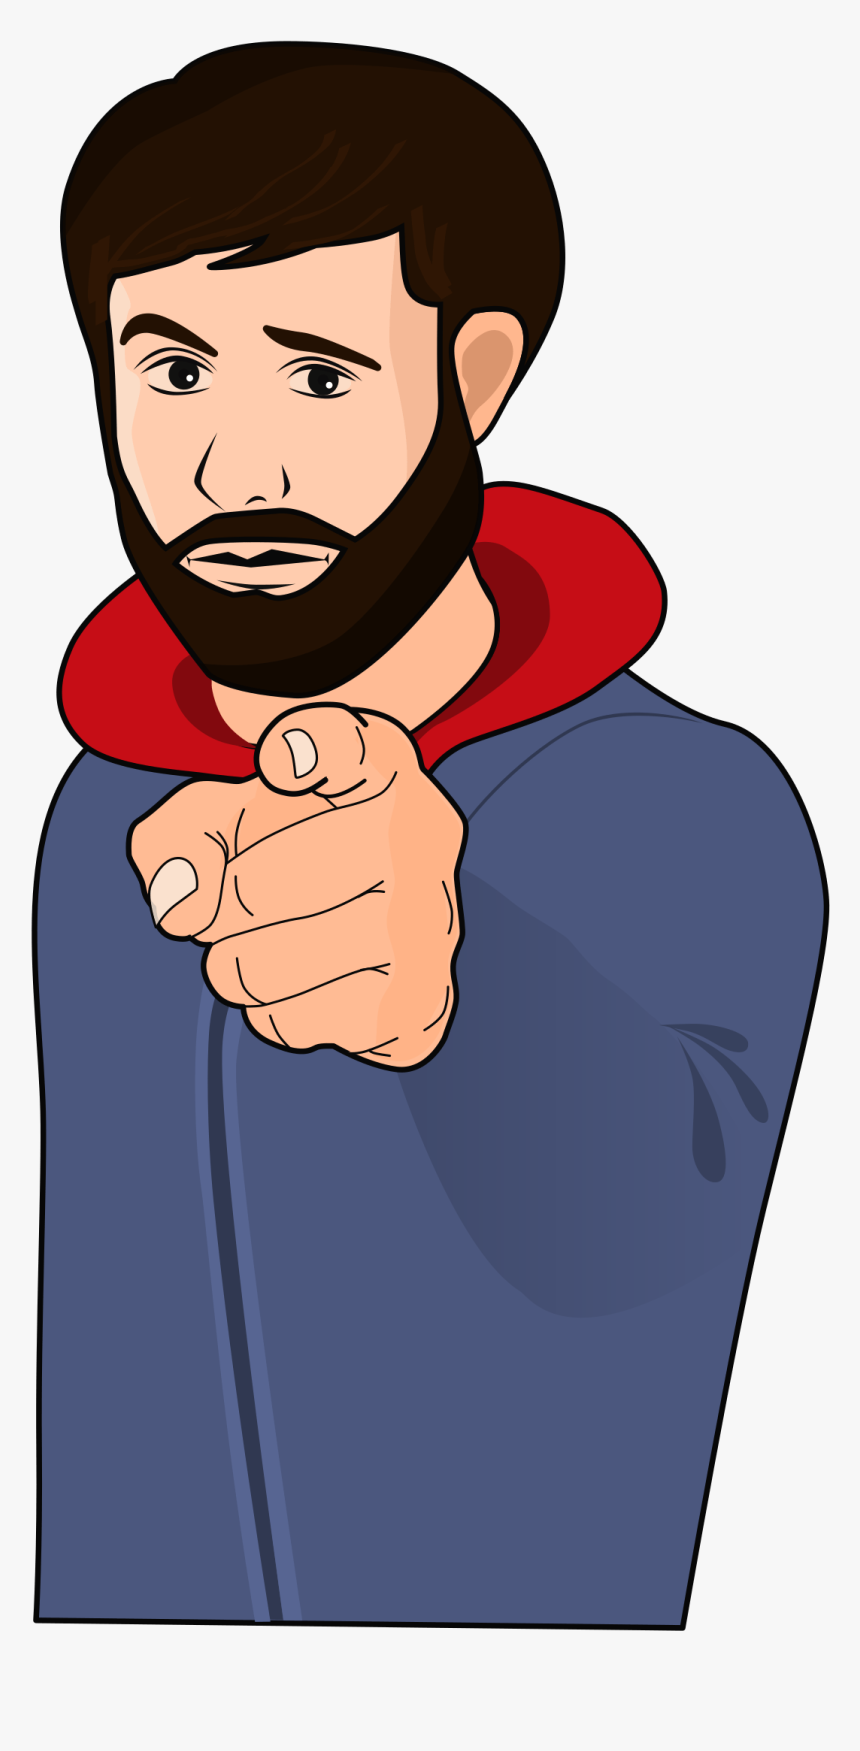 Finger Pointing At You Clip Art, HD Png Download, Free Download